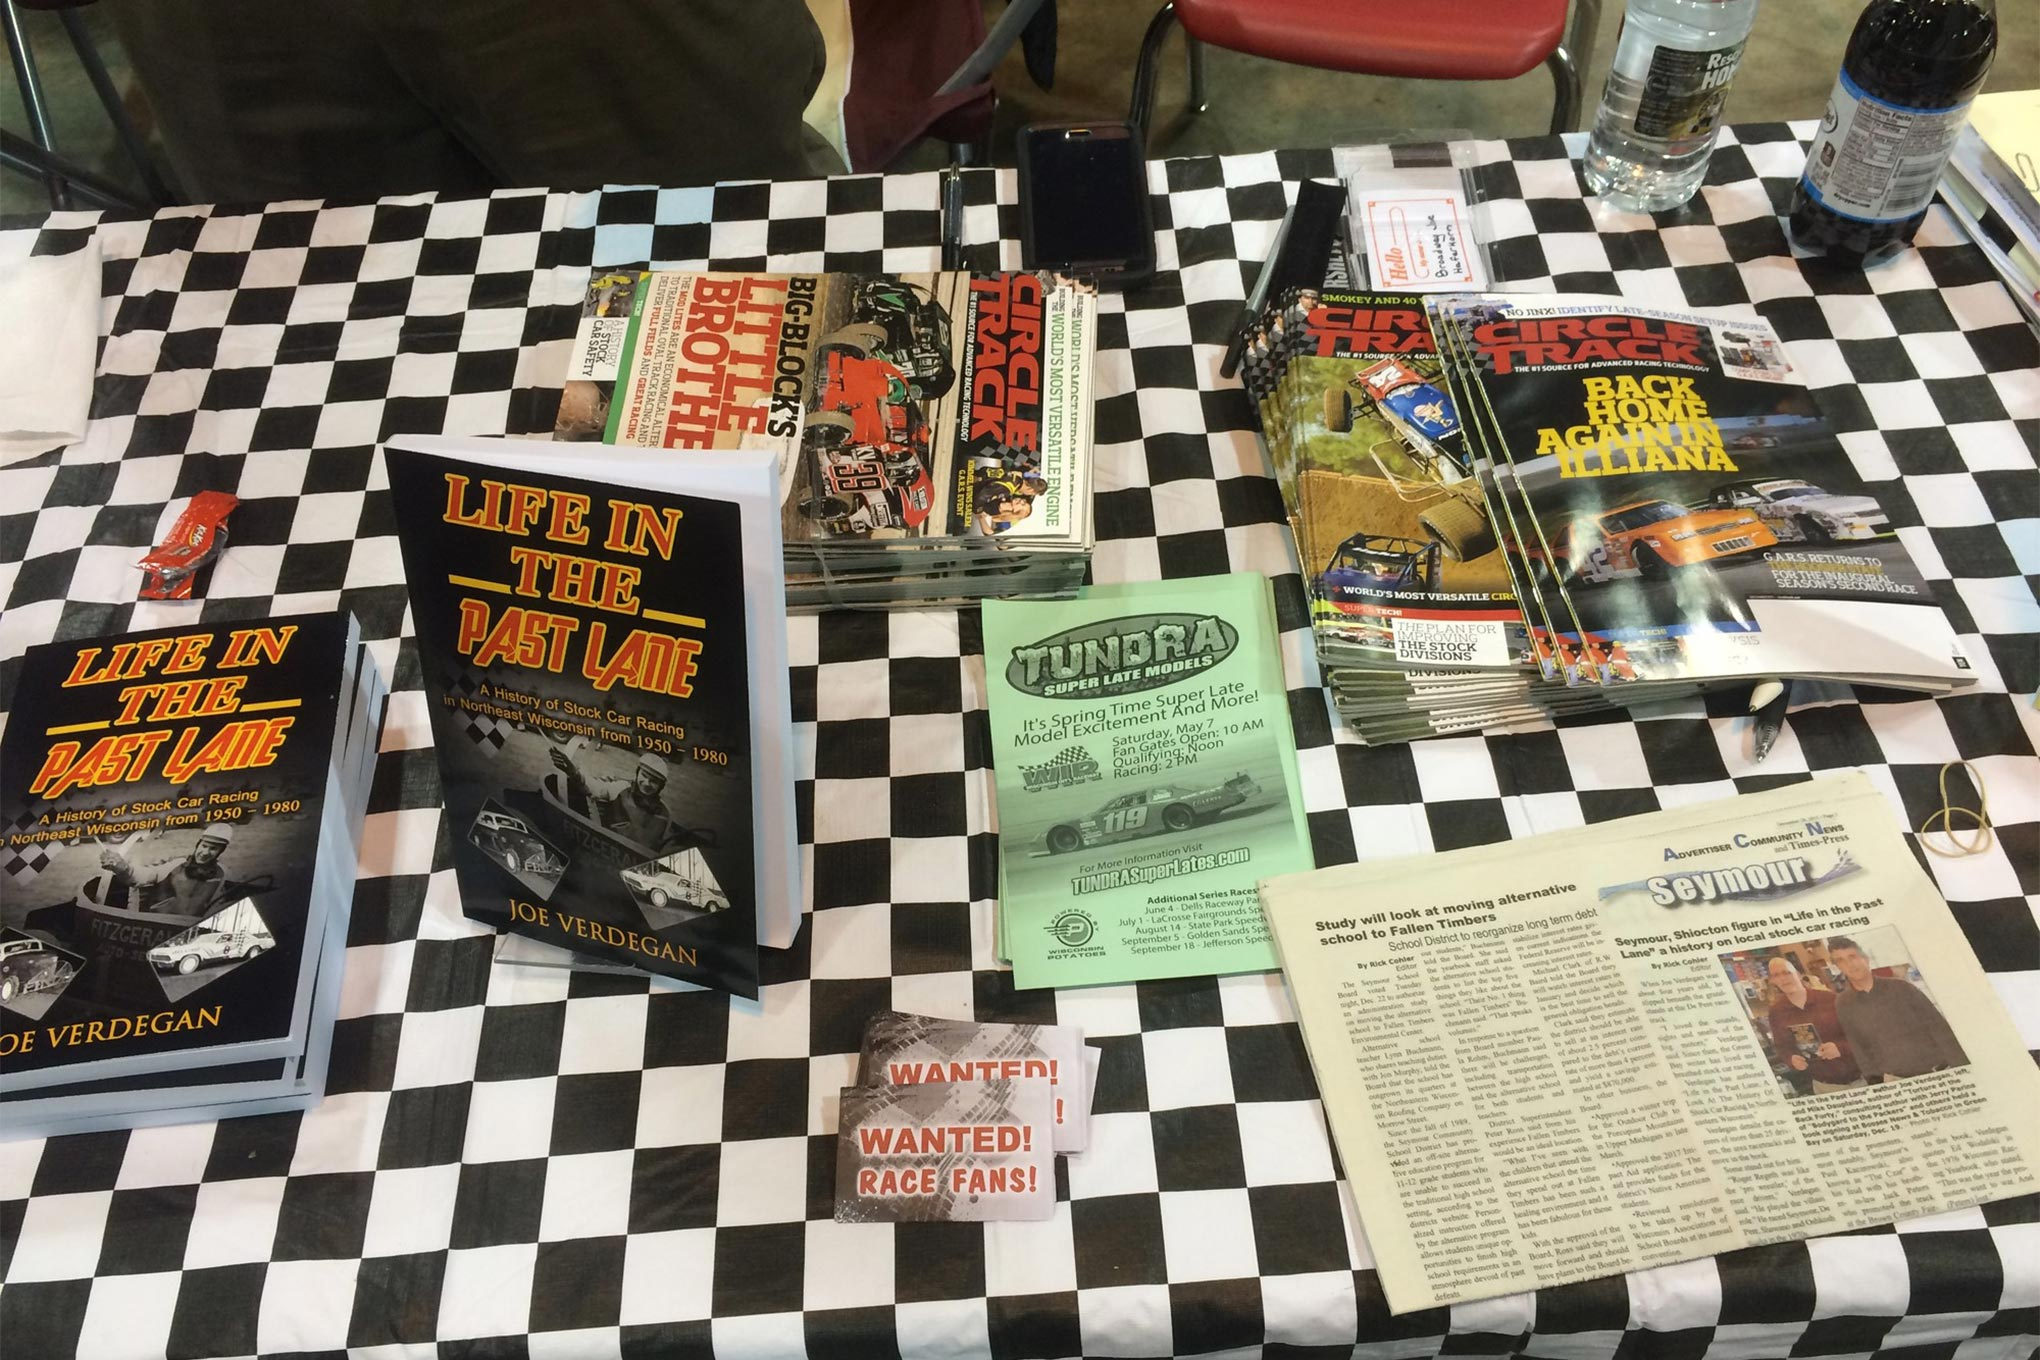 Joe Verdegan was gracious enough to distribute some magazines for us.  His booth may have been one of the busiest.  His book Life in the Past Lane is all about the early days of racing in Northeast Wisconsin.